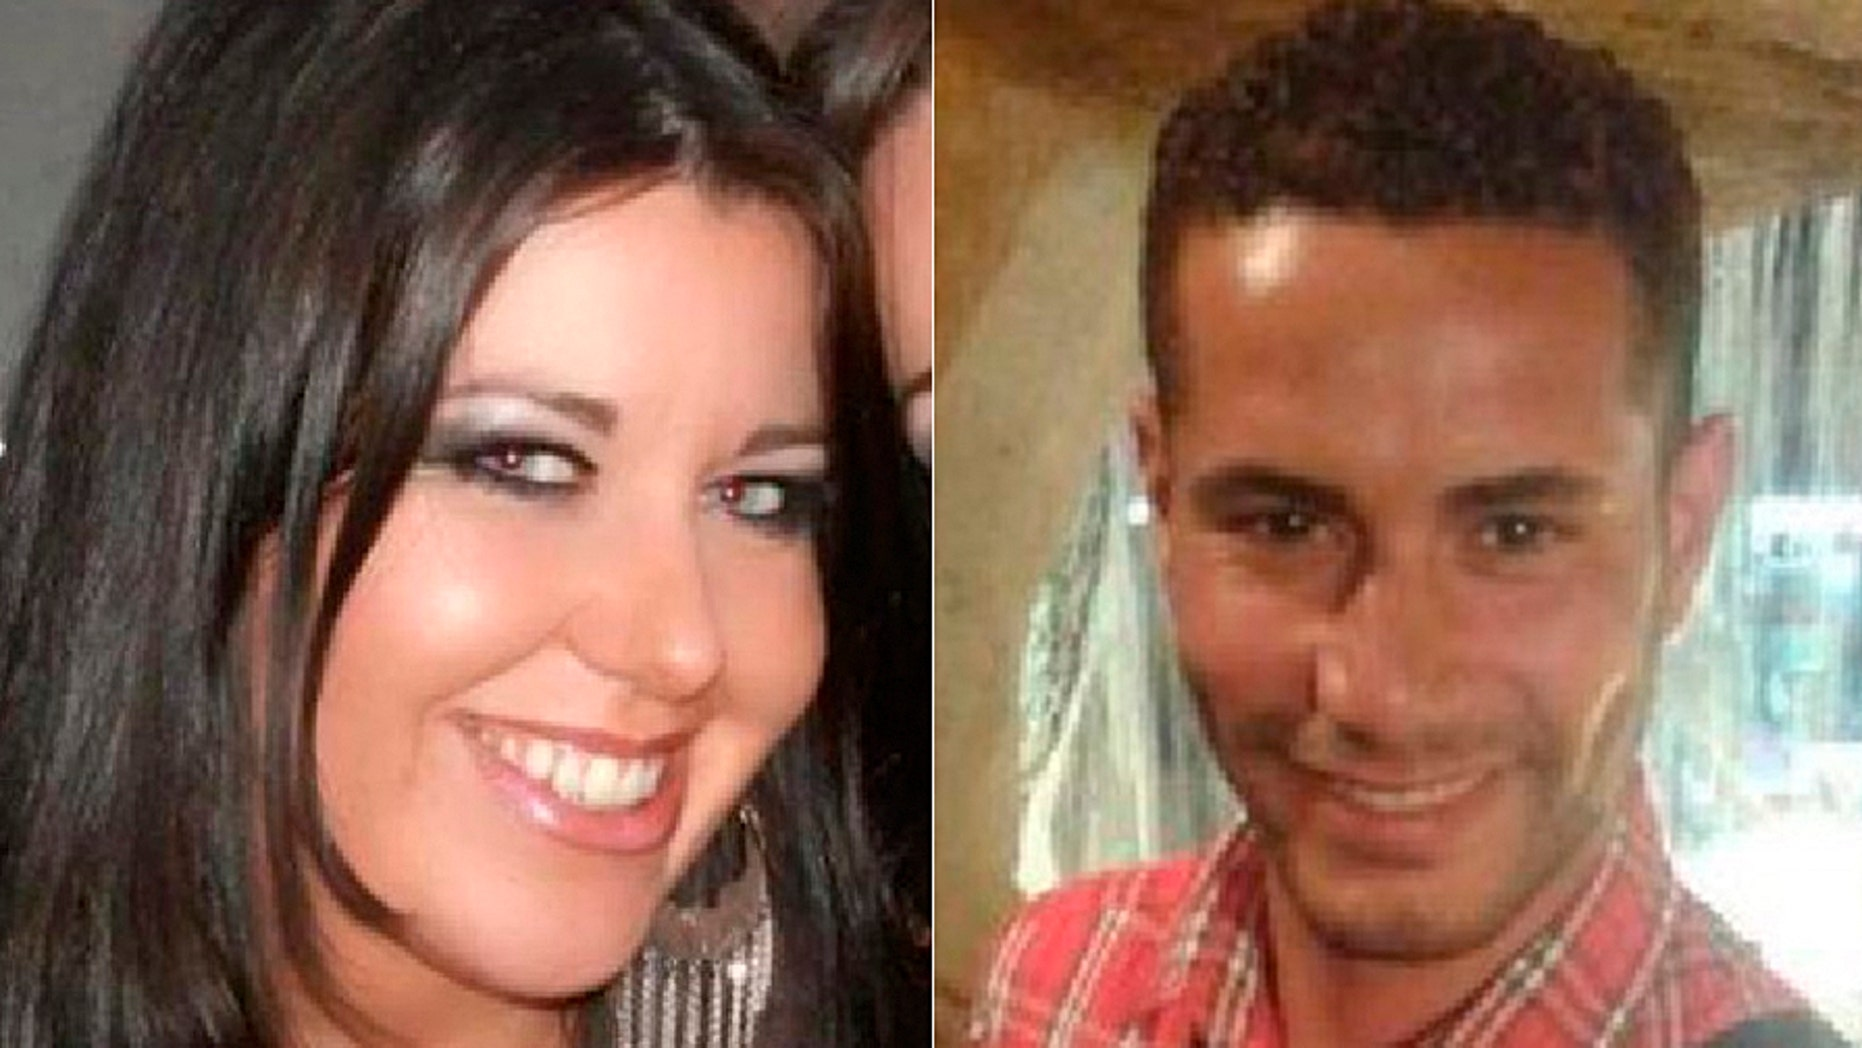 Laura Plummer, left, was sentenced to prison time for smuggling drugs into Egypt that she claimed were for her boyfriend Omar Caboo, at right.